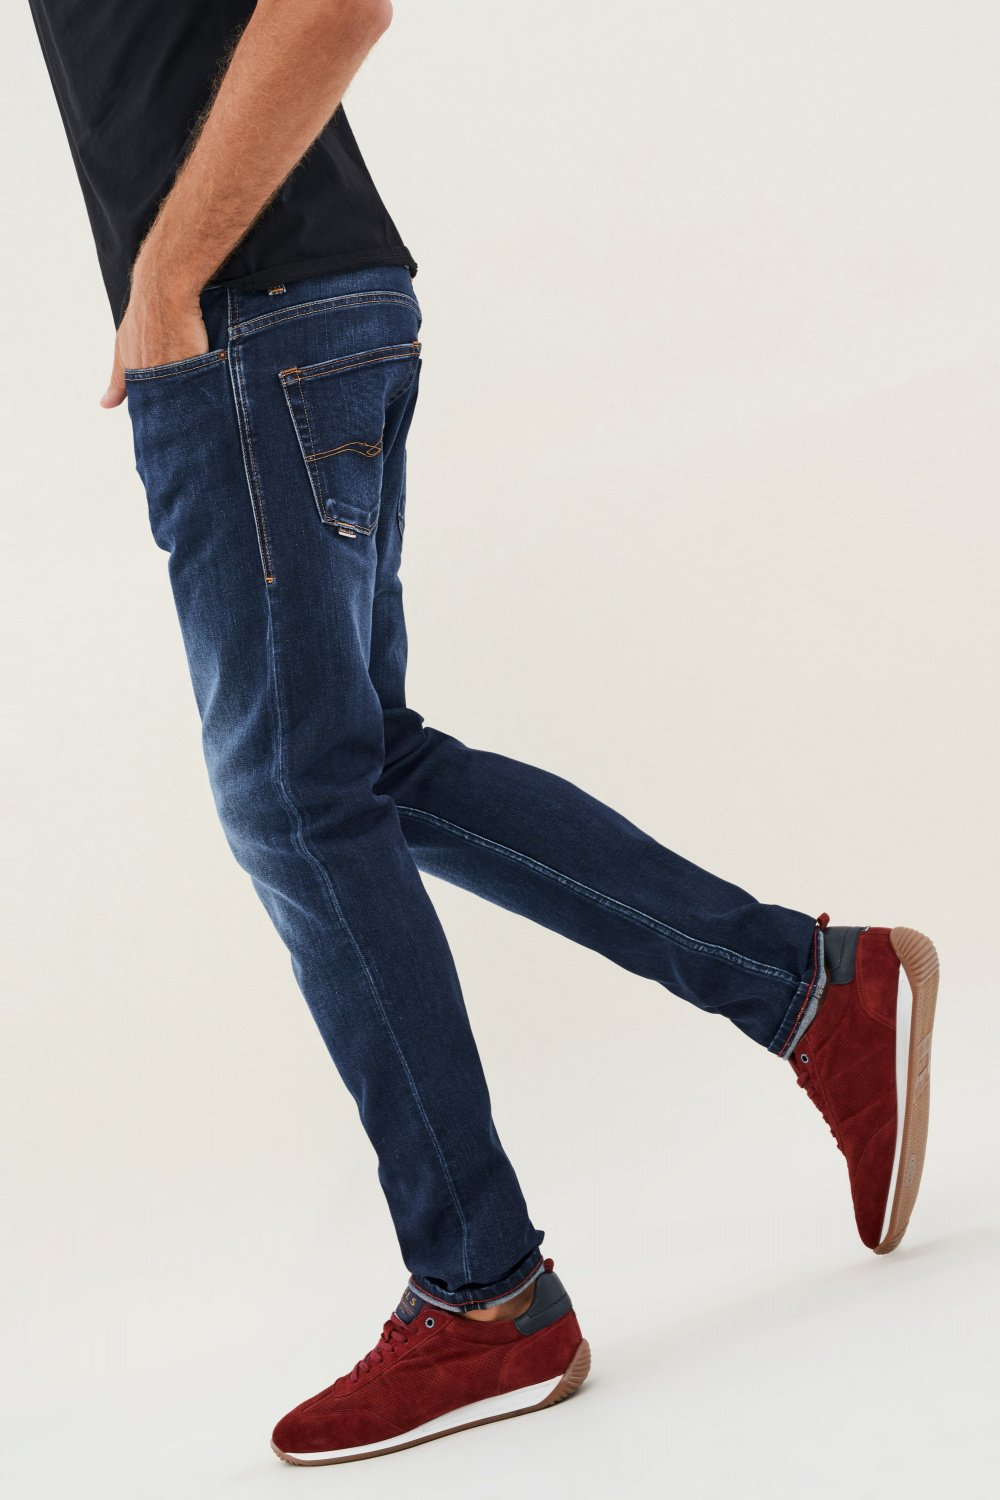 Jeans slender slim carrot warm denim greencast - Salsa